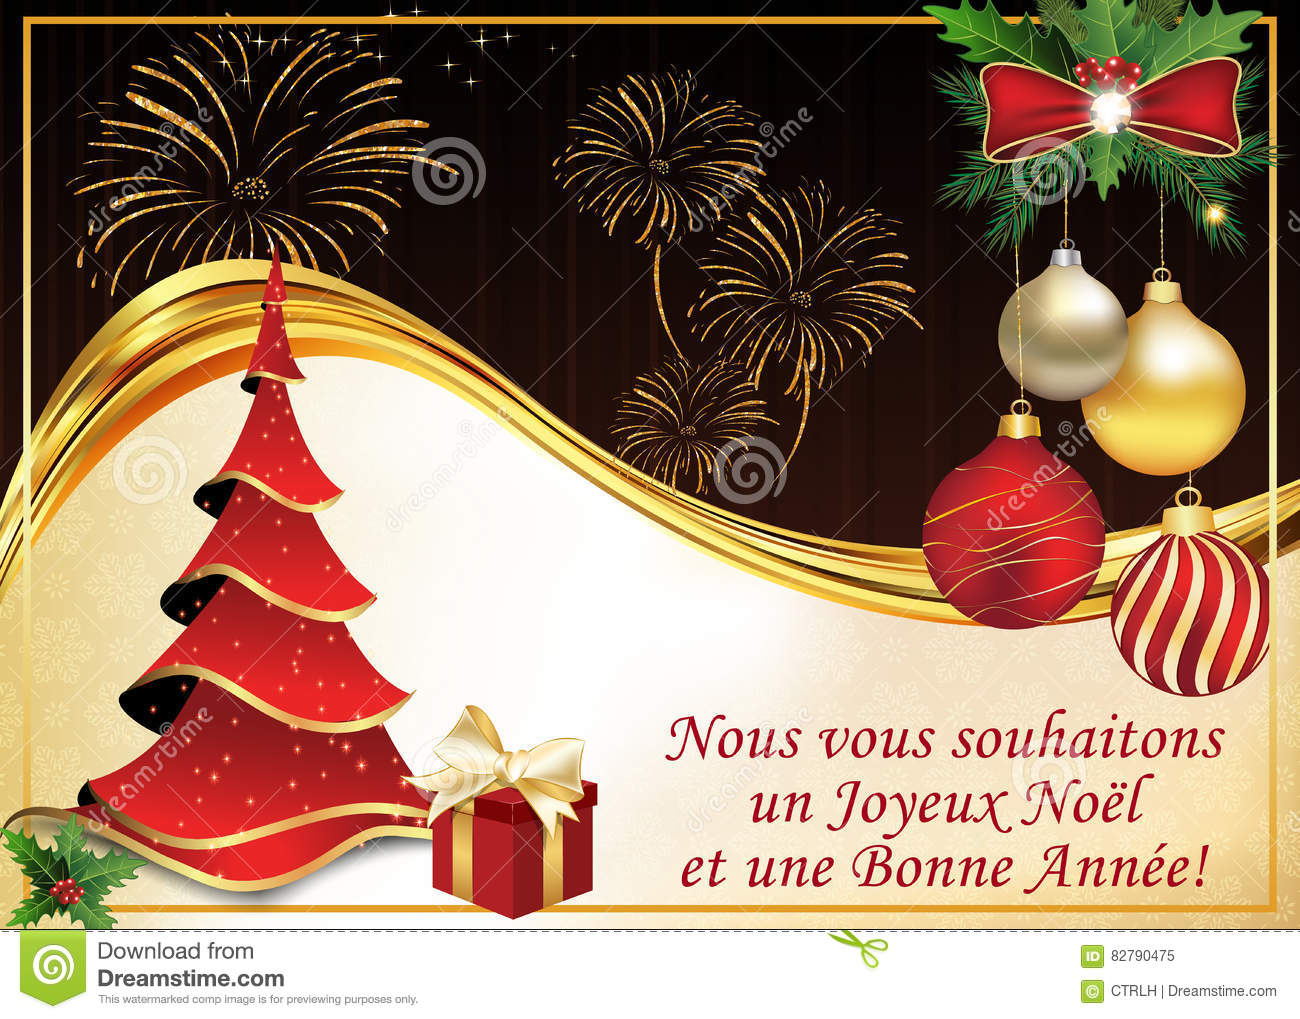 we wish you merry christmas and happy new year